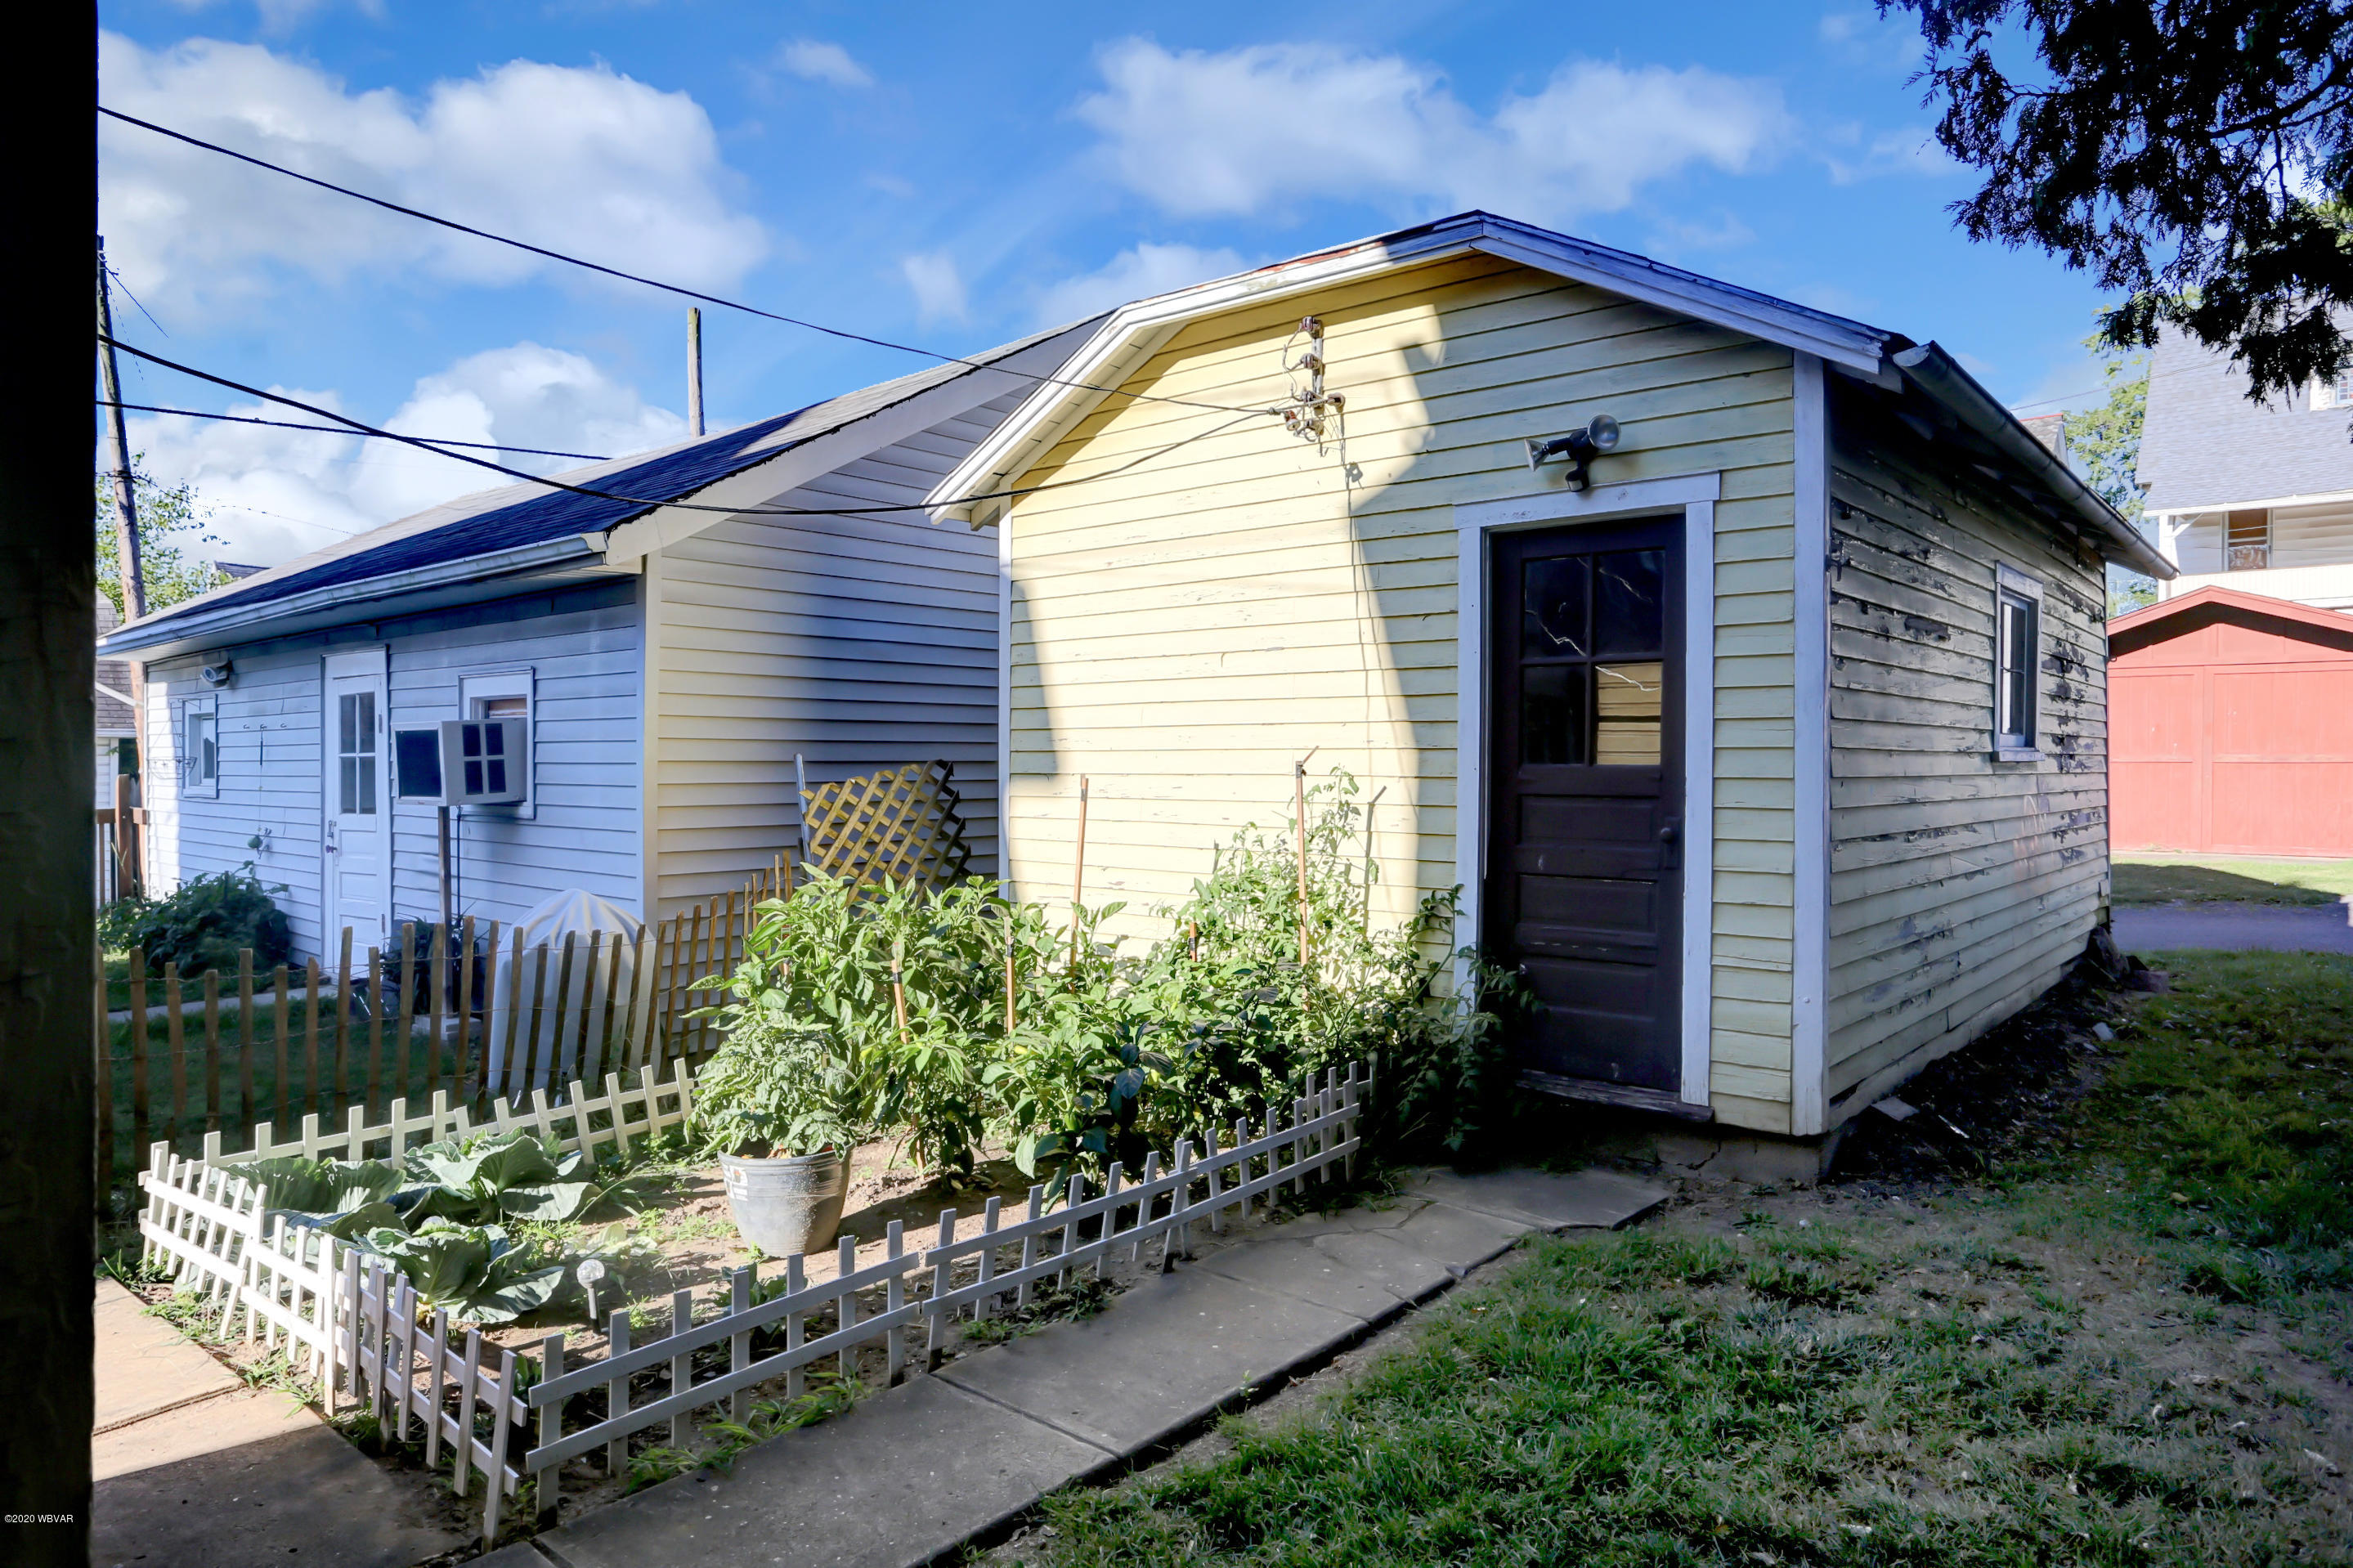 721 4TH AVENUE, Williamsport, PA 17701, 6 Bedrooms Bedrooms, ,2 BathroomsBathrooms,Residential,For sale,4TH,WB-90906